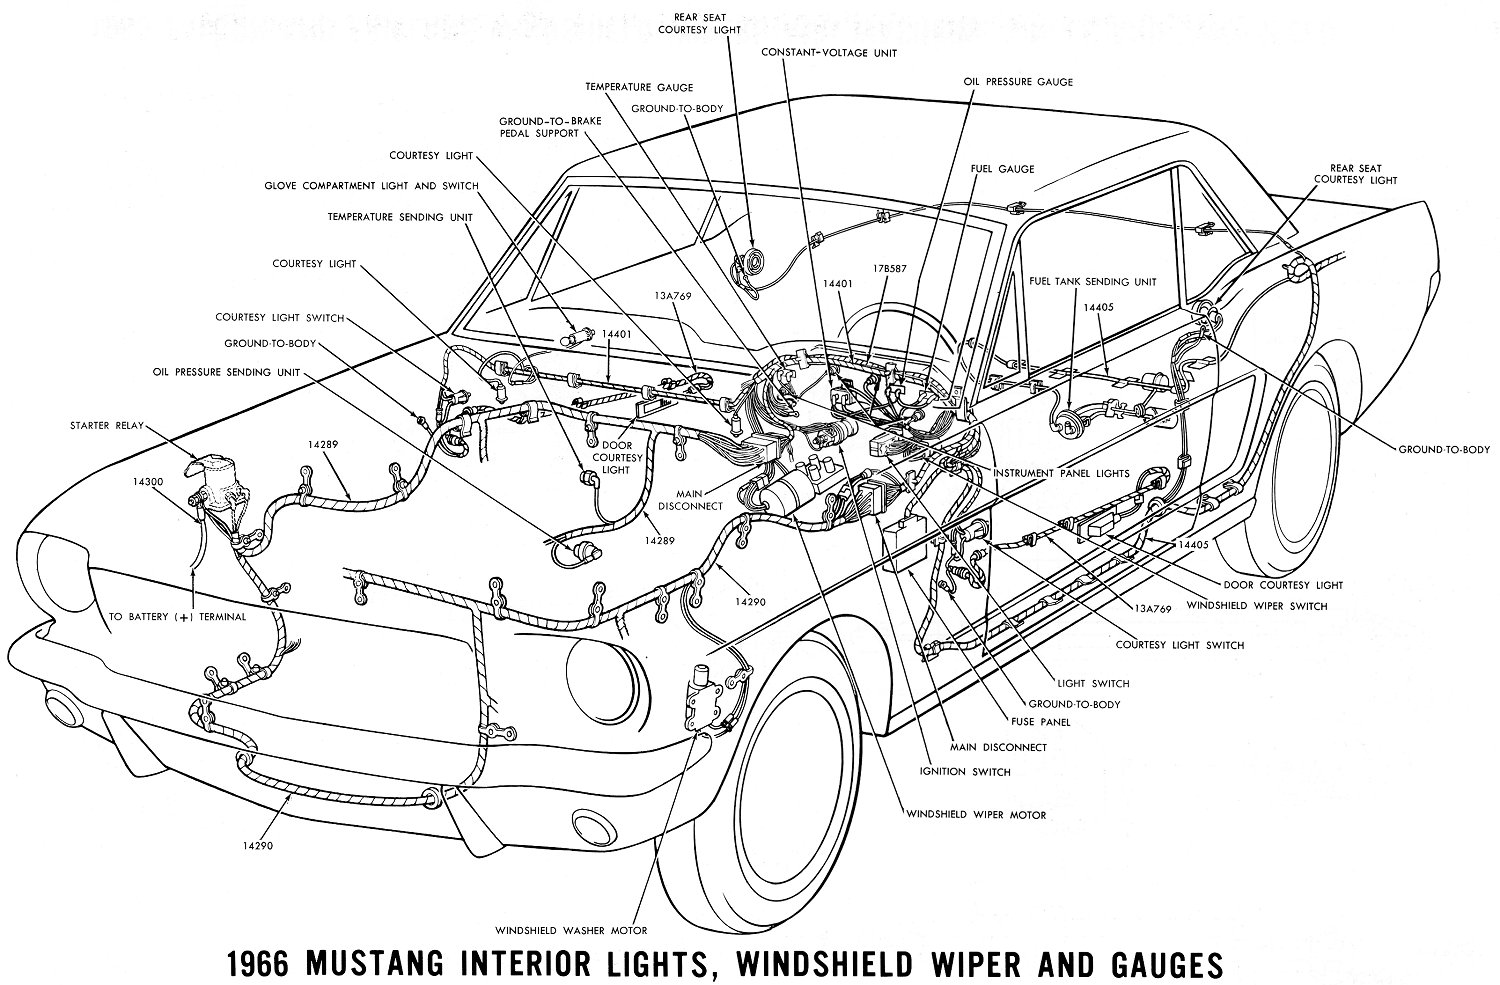 66inter 1966 mustang wiring diagrams average joe restoration 68 mustang headlight wiring diagram at edmiracle.co